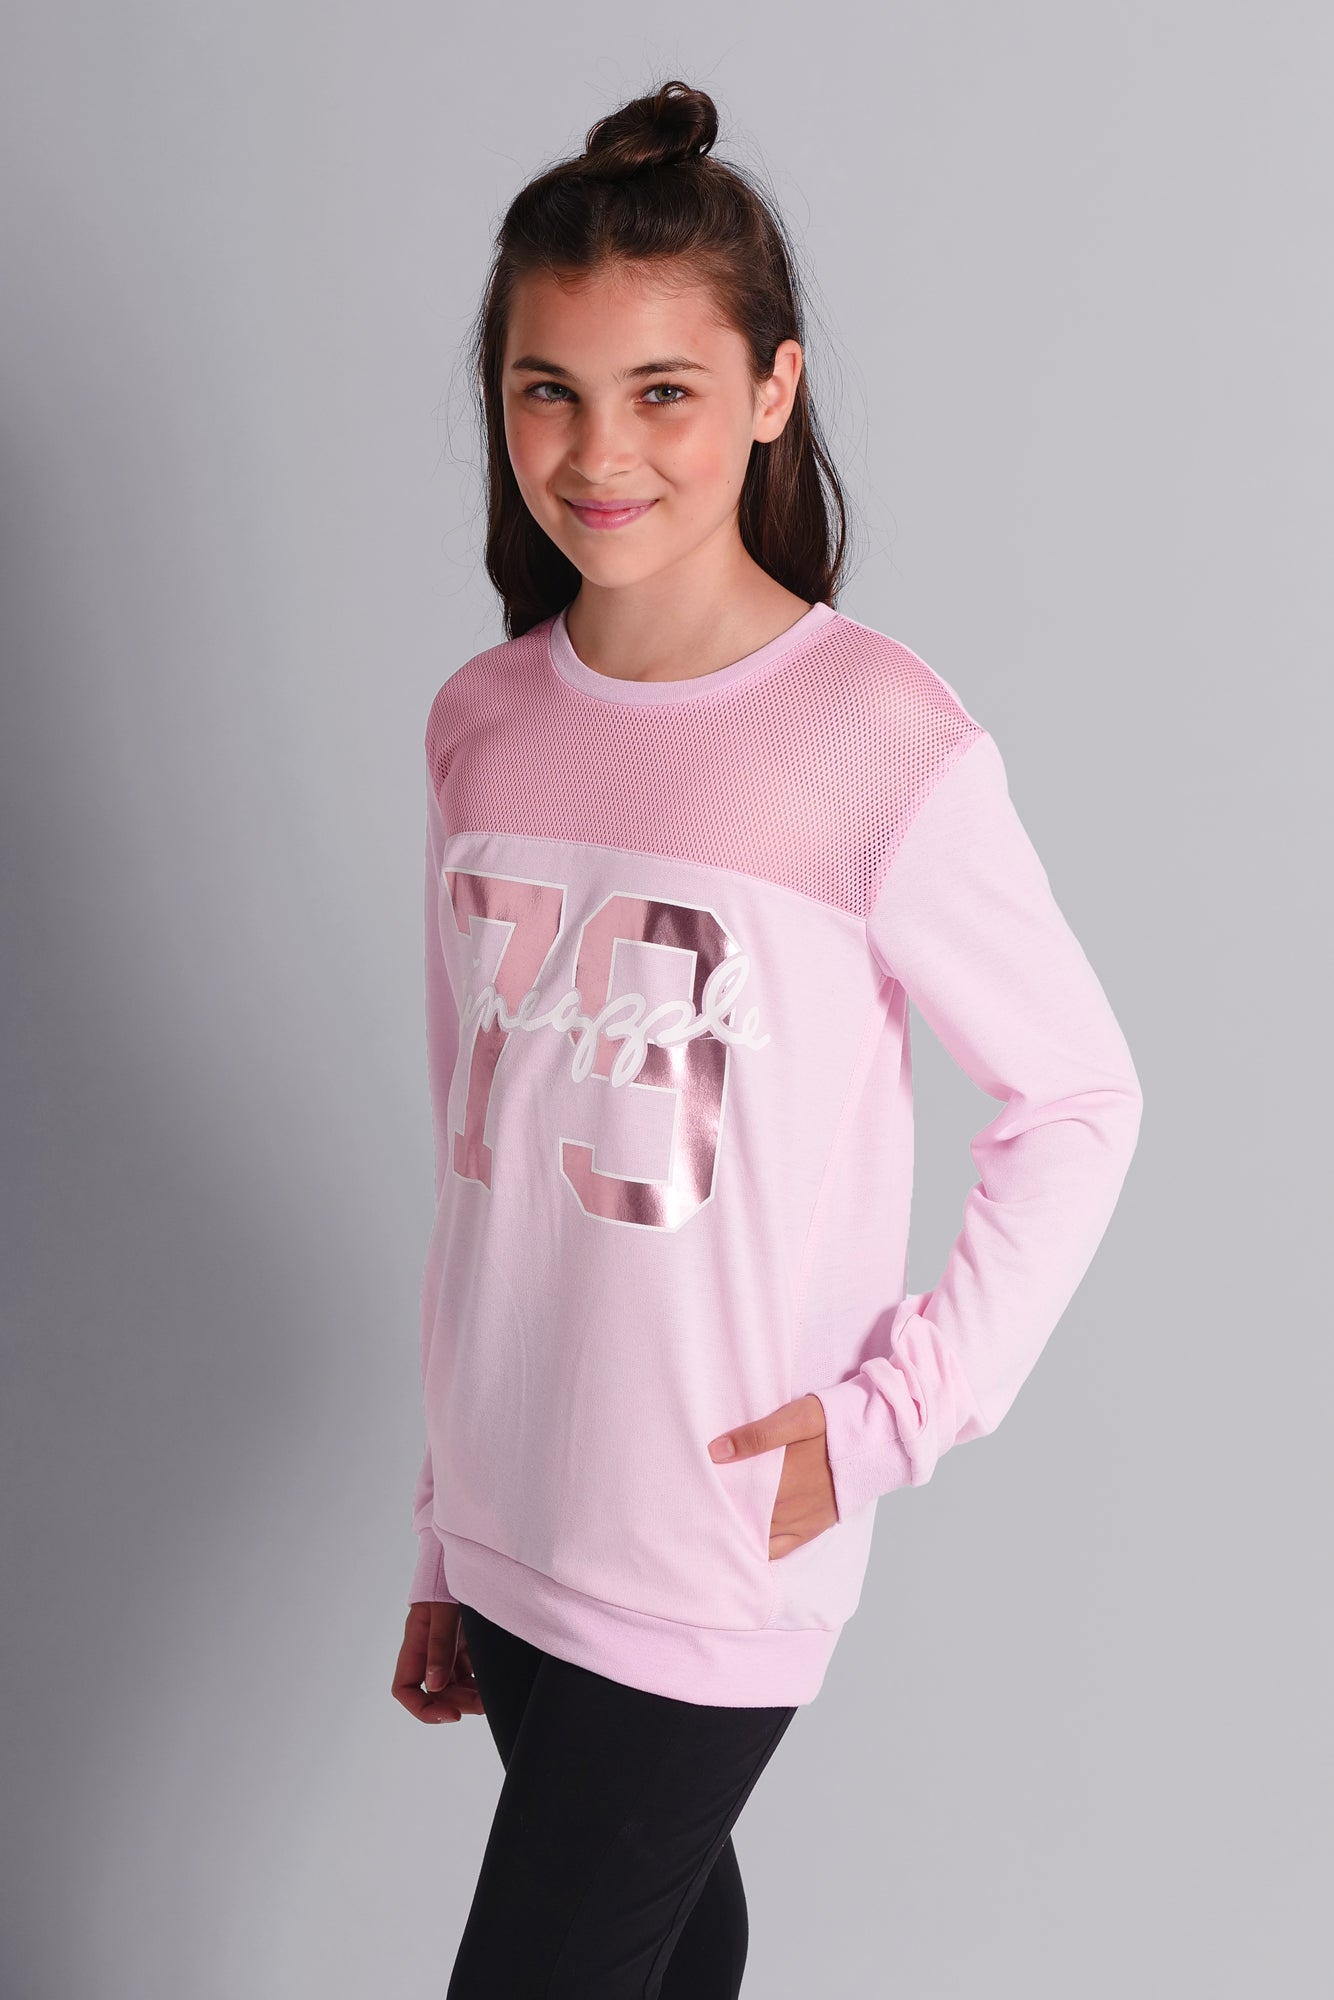 Pineapple Dancewear Girls' Pink Mesh Monster Sweater